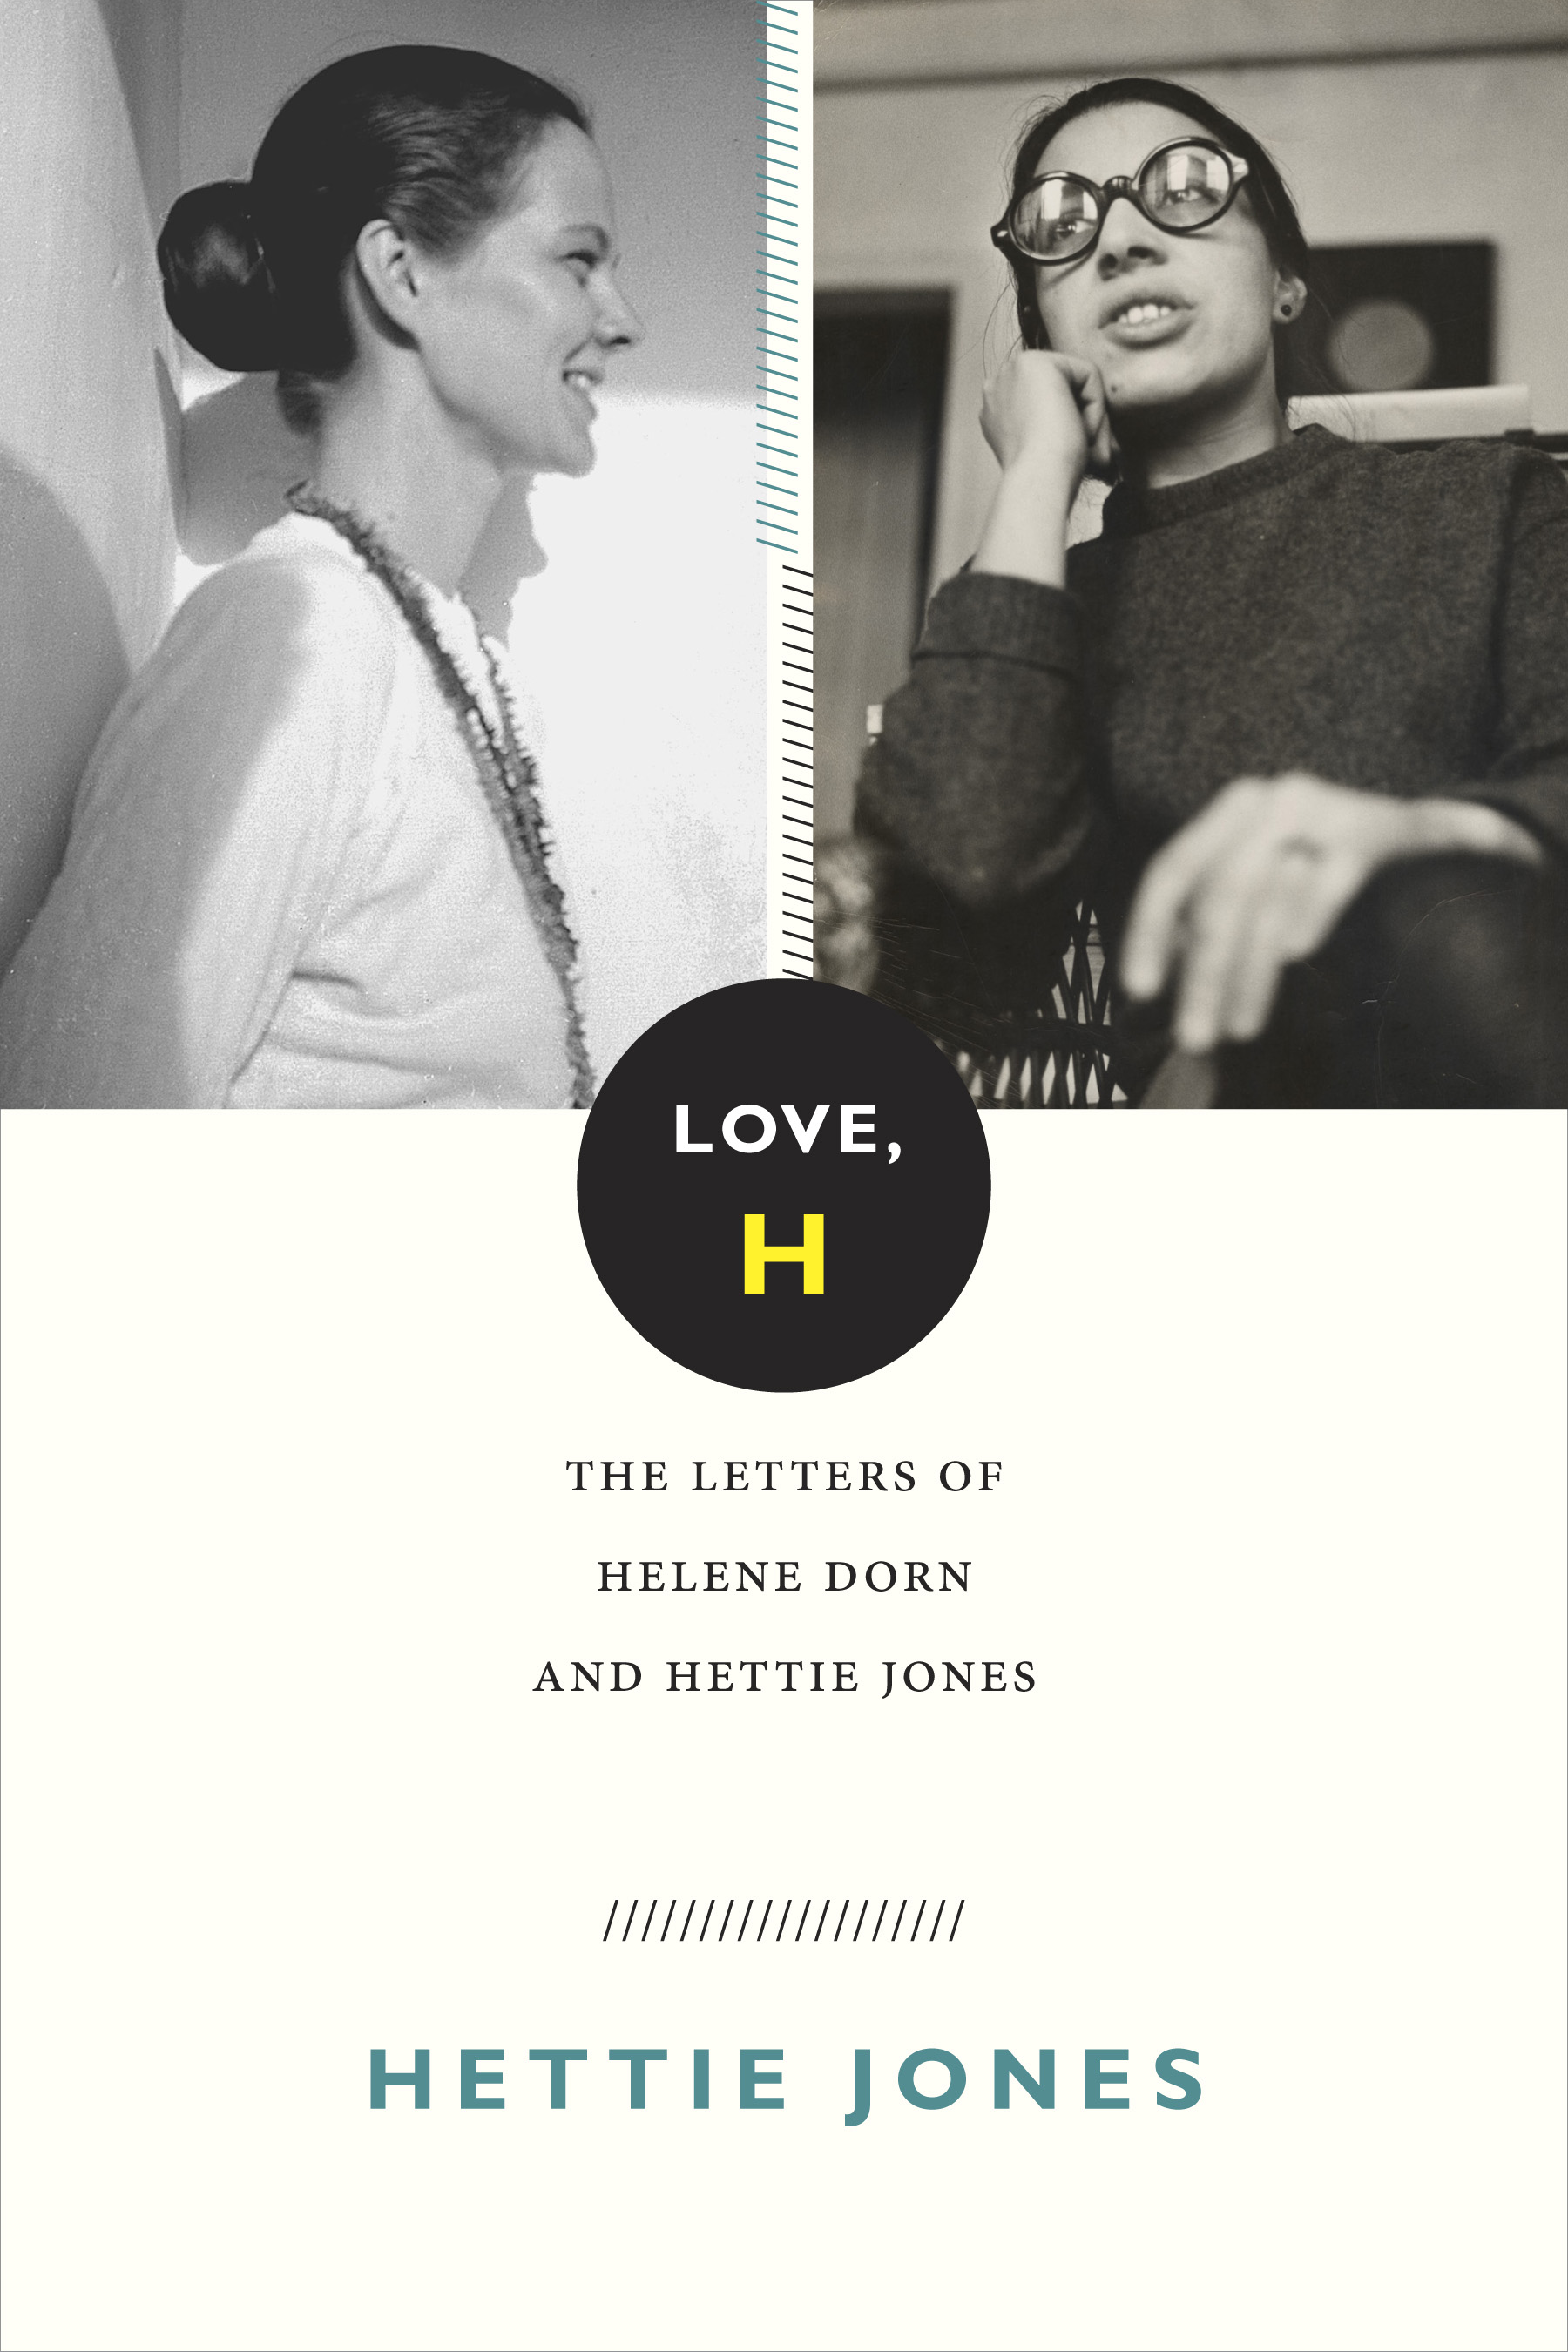 The black and white photo shows the book cover of the letters of Helene Dorn and Hettie James.